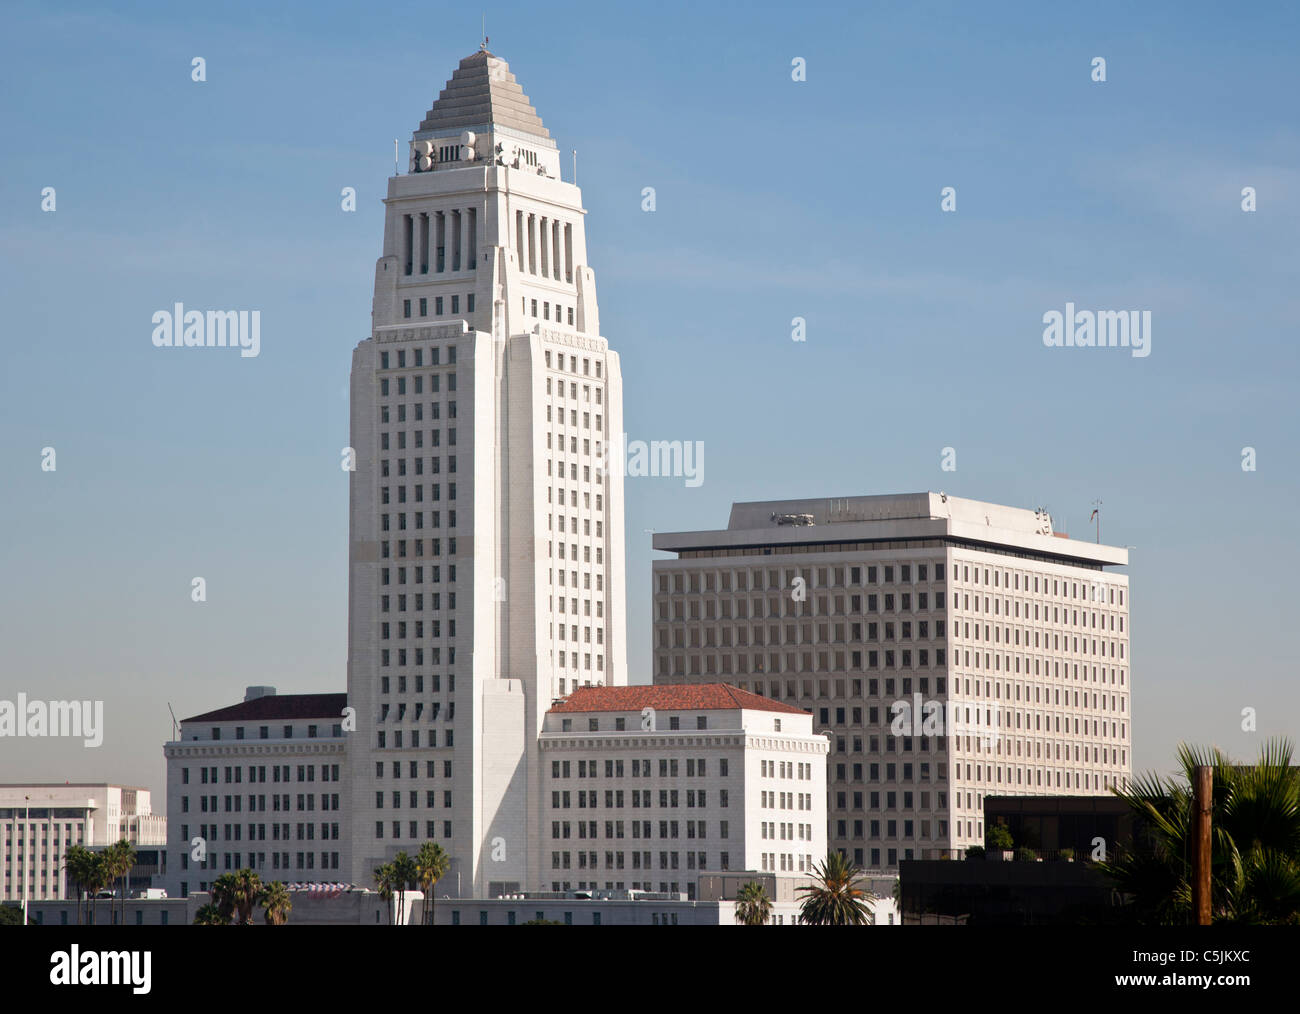 Los Angeles City Hall building in Downtown, Los Angeles, California, USA - Stock Image